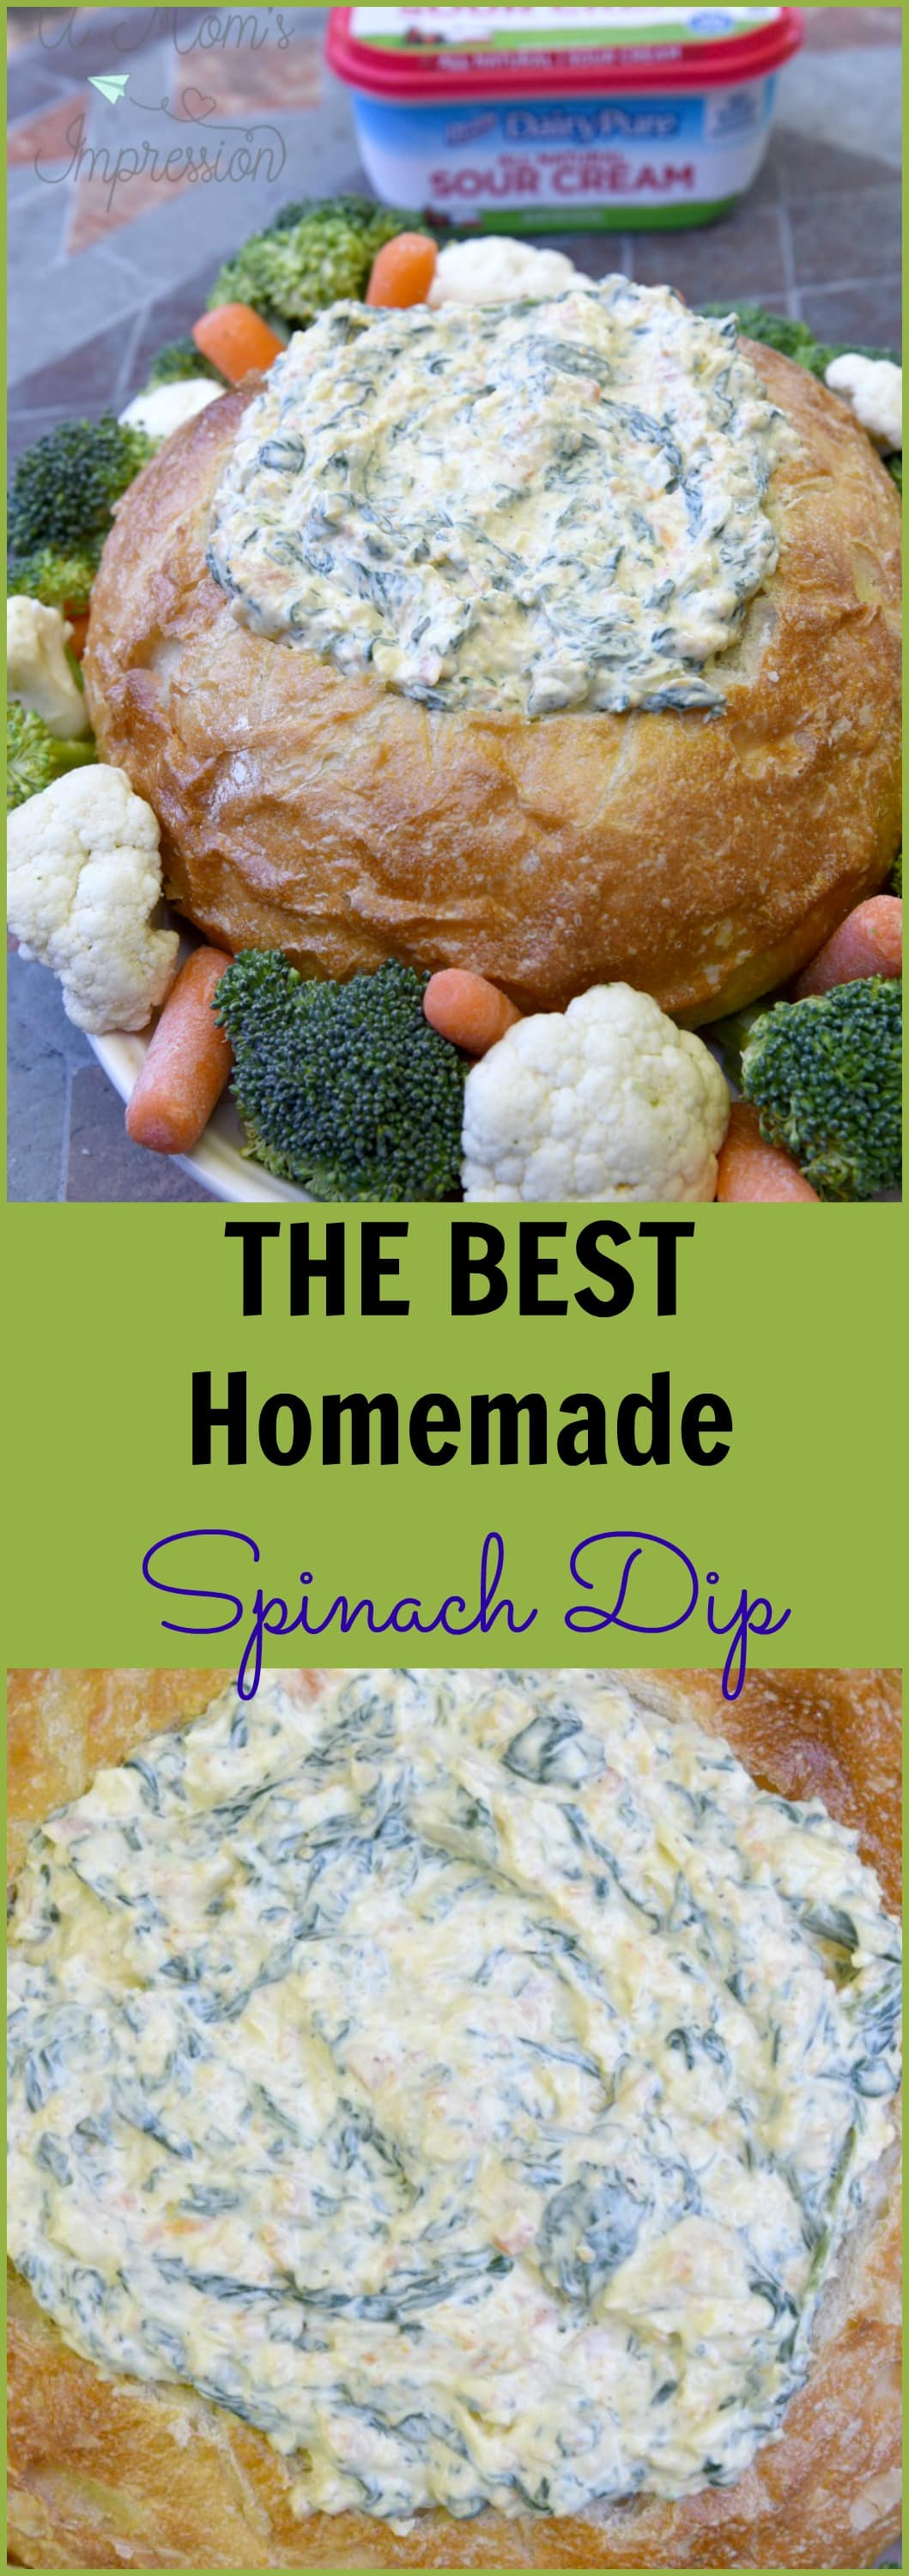 Check out this tasty and easy DIY spinach dip recipe for entertaining all year long! This dip is so tasty, you'll want it for birthday parties, game days, and holidays! #AD